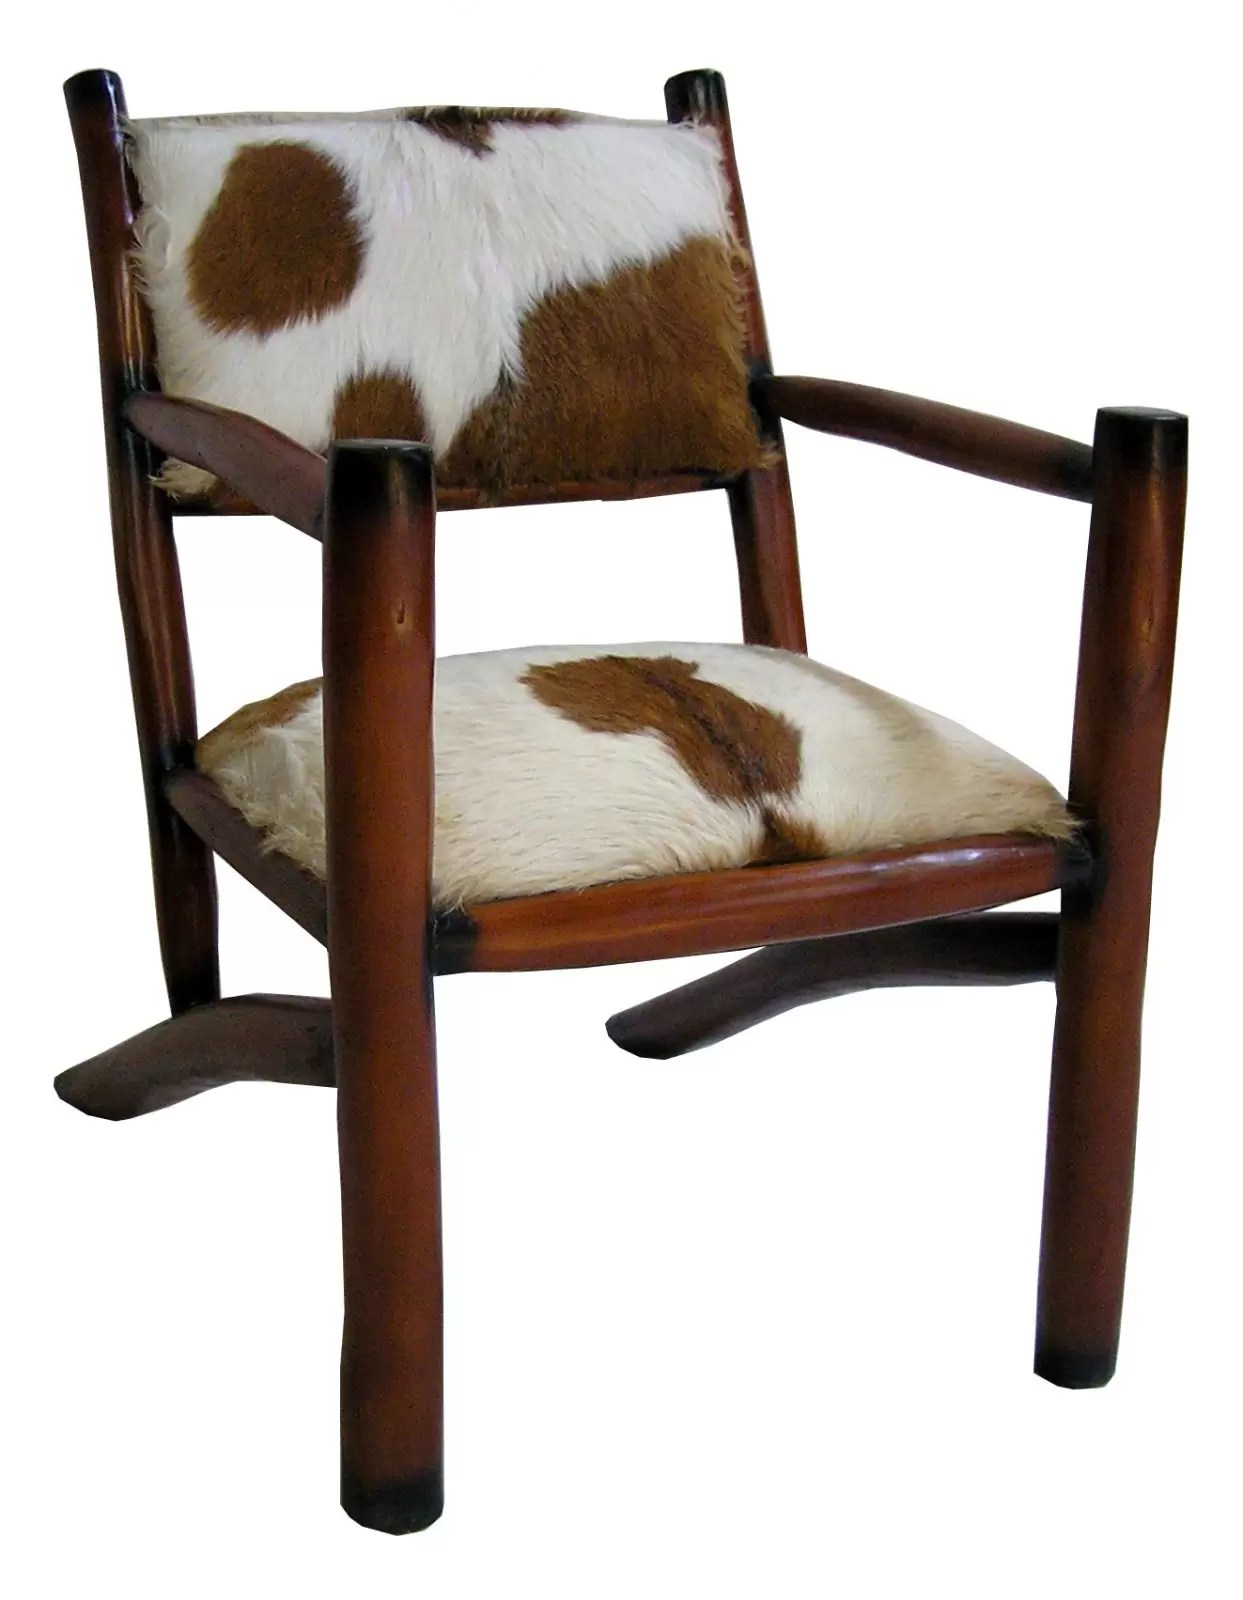 Furniture Markham Markham Chair Furniture Indonesia Chair Leather Furniture